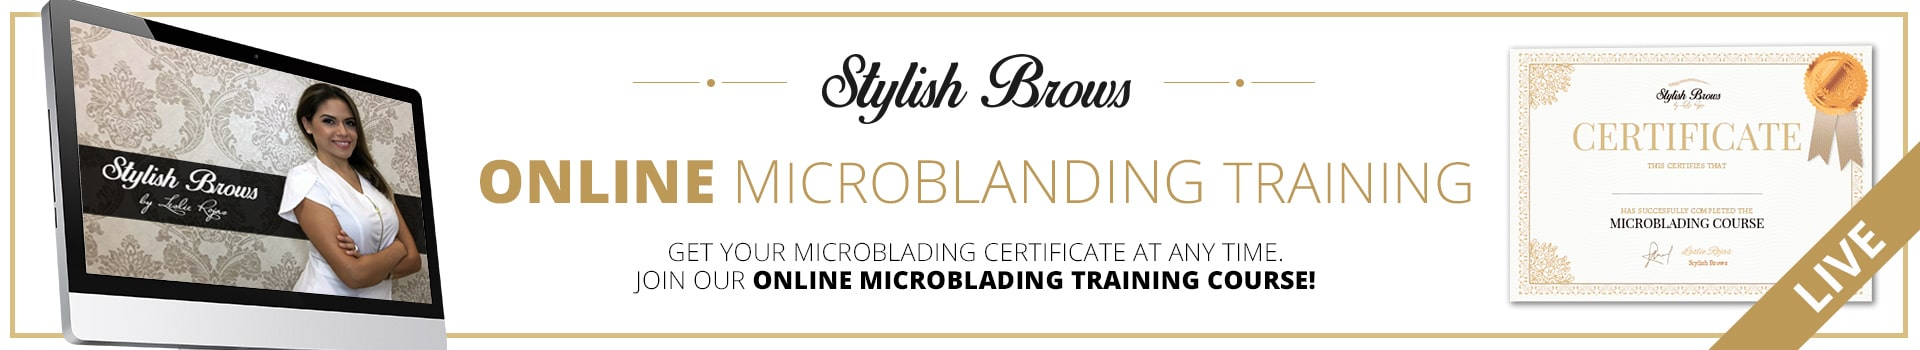 Microblading Training Online | Stylish Brows